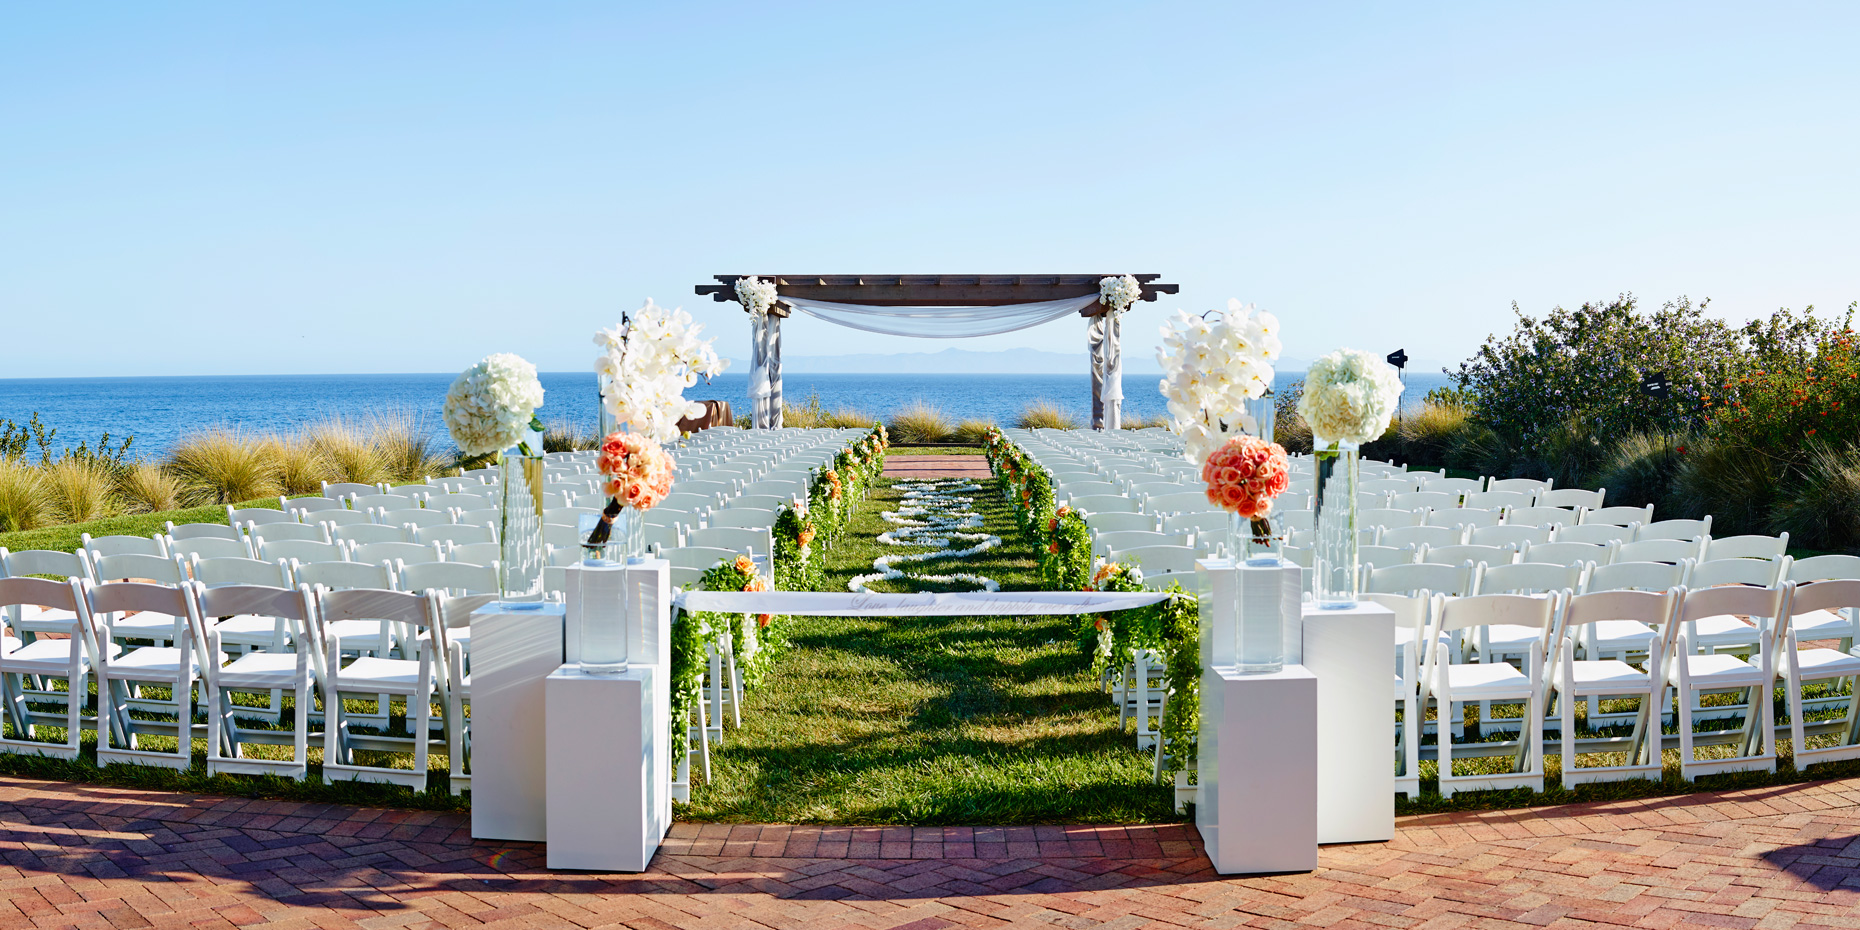 Ceremony location at Terranea Resort in Rancho Palos Verdes California